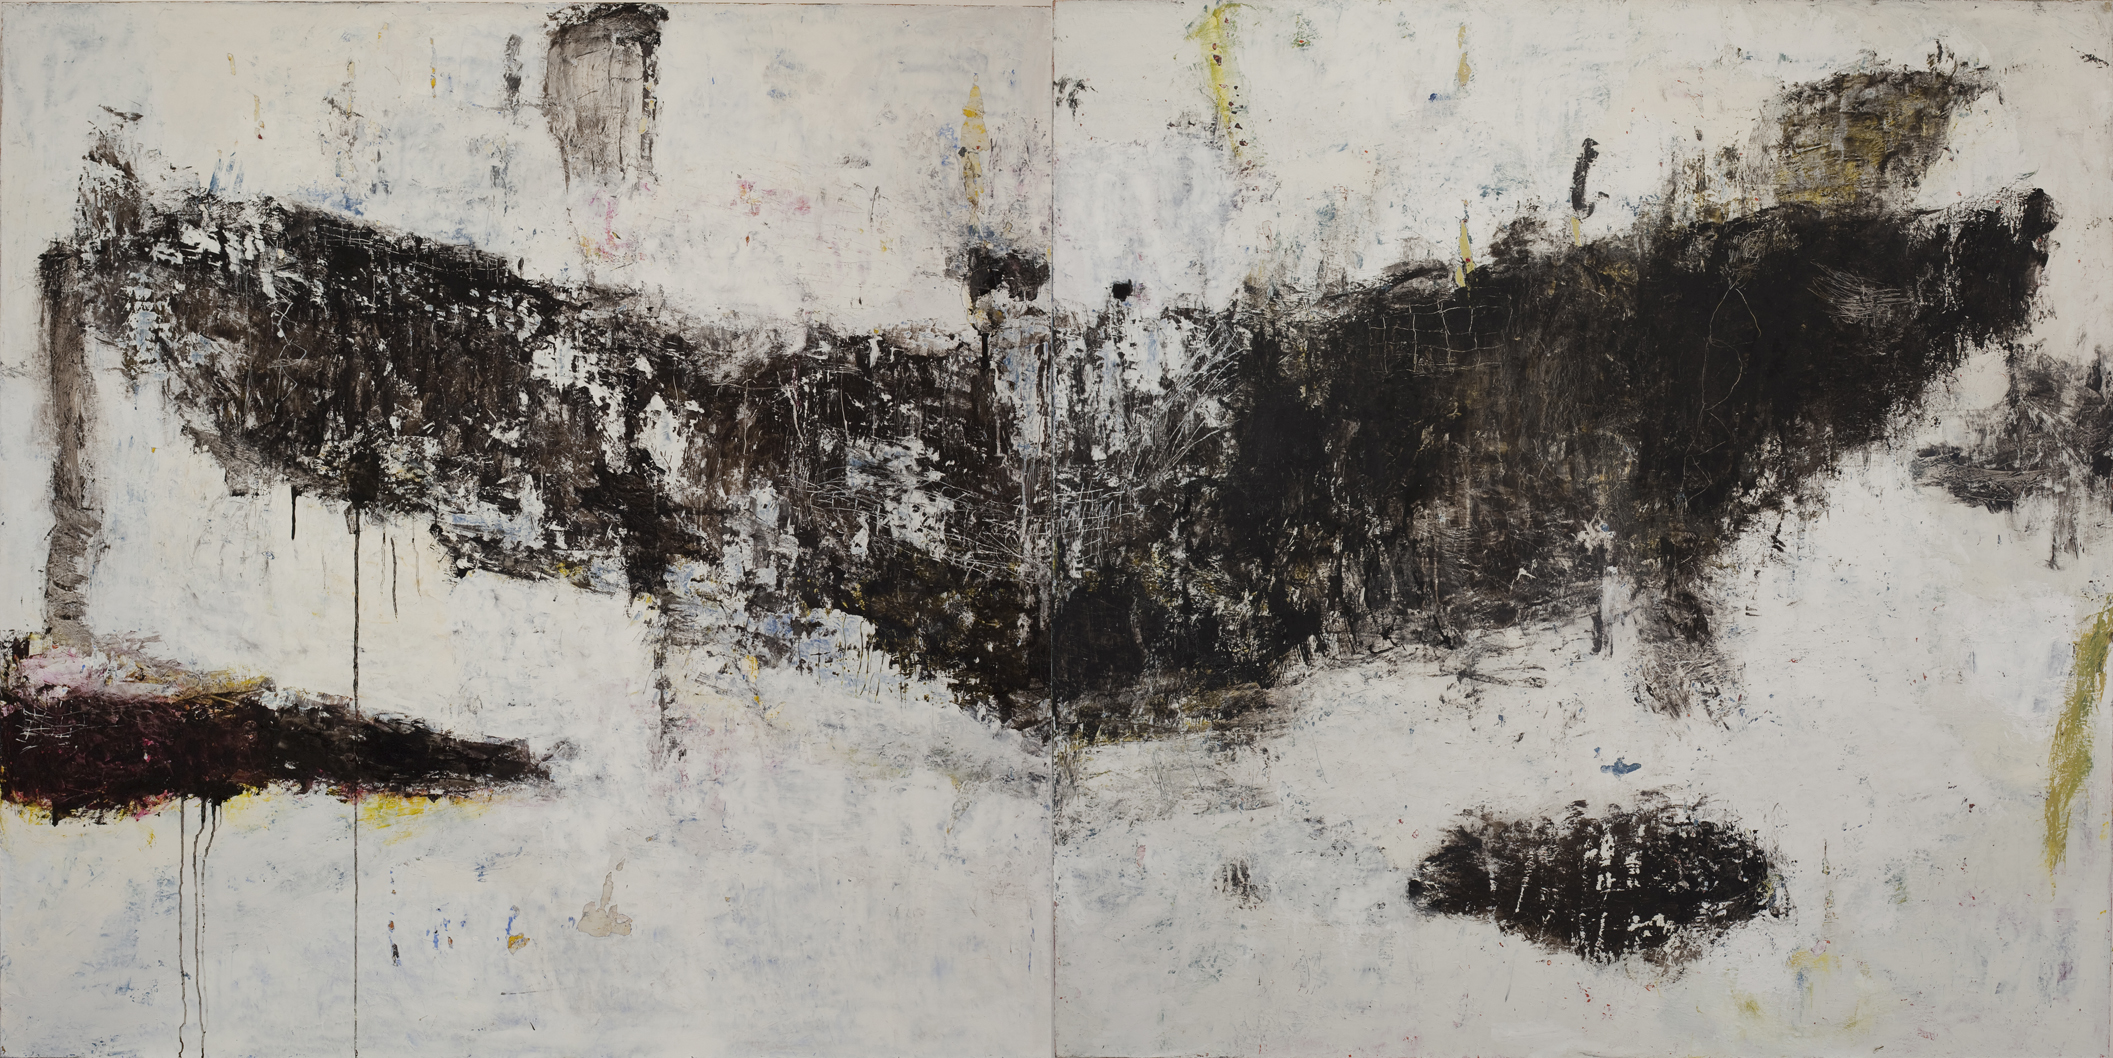 Whale 3 oil on canvas 72x144 in diptych 2016